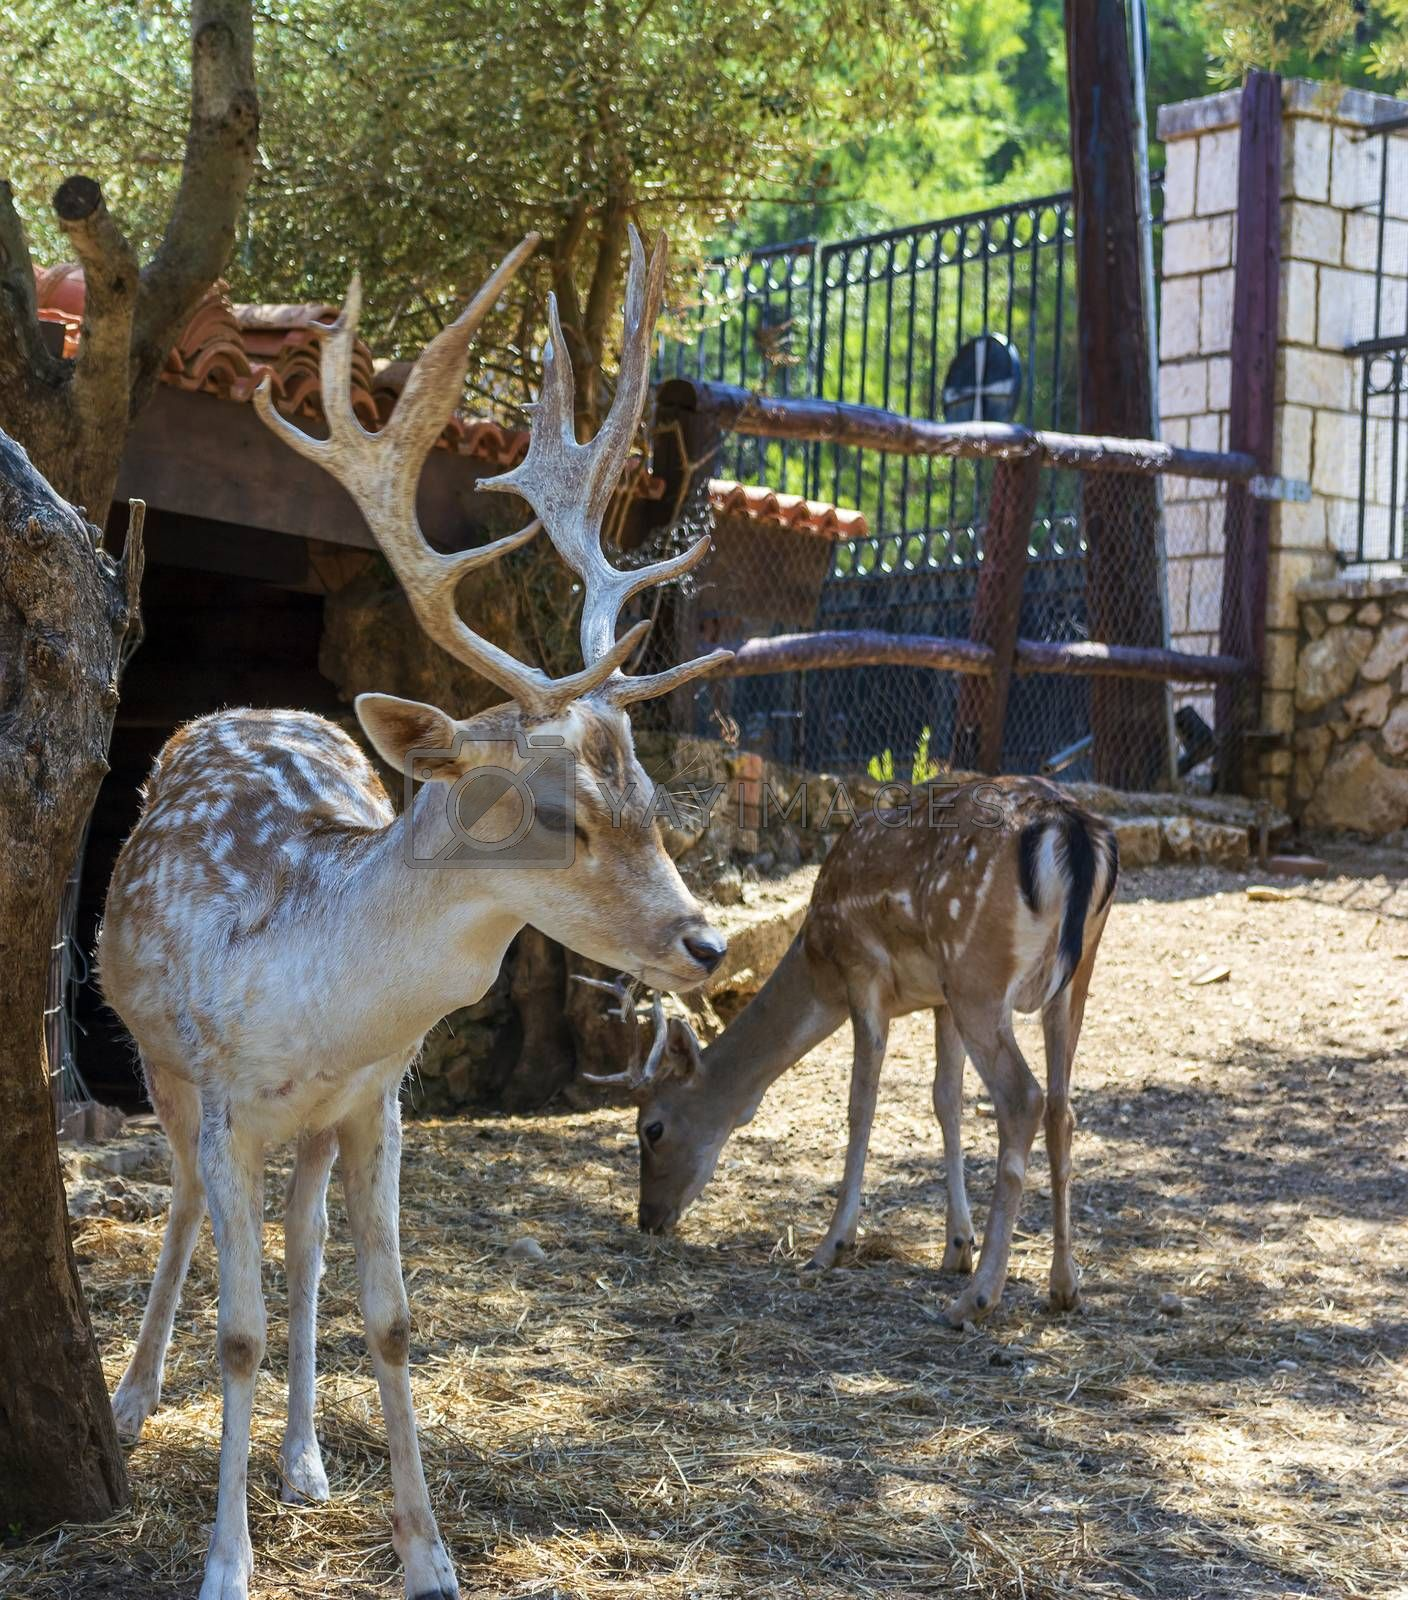 Deer placed in Captivity in a park zoo on a sunny day in Greece.